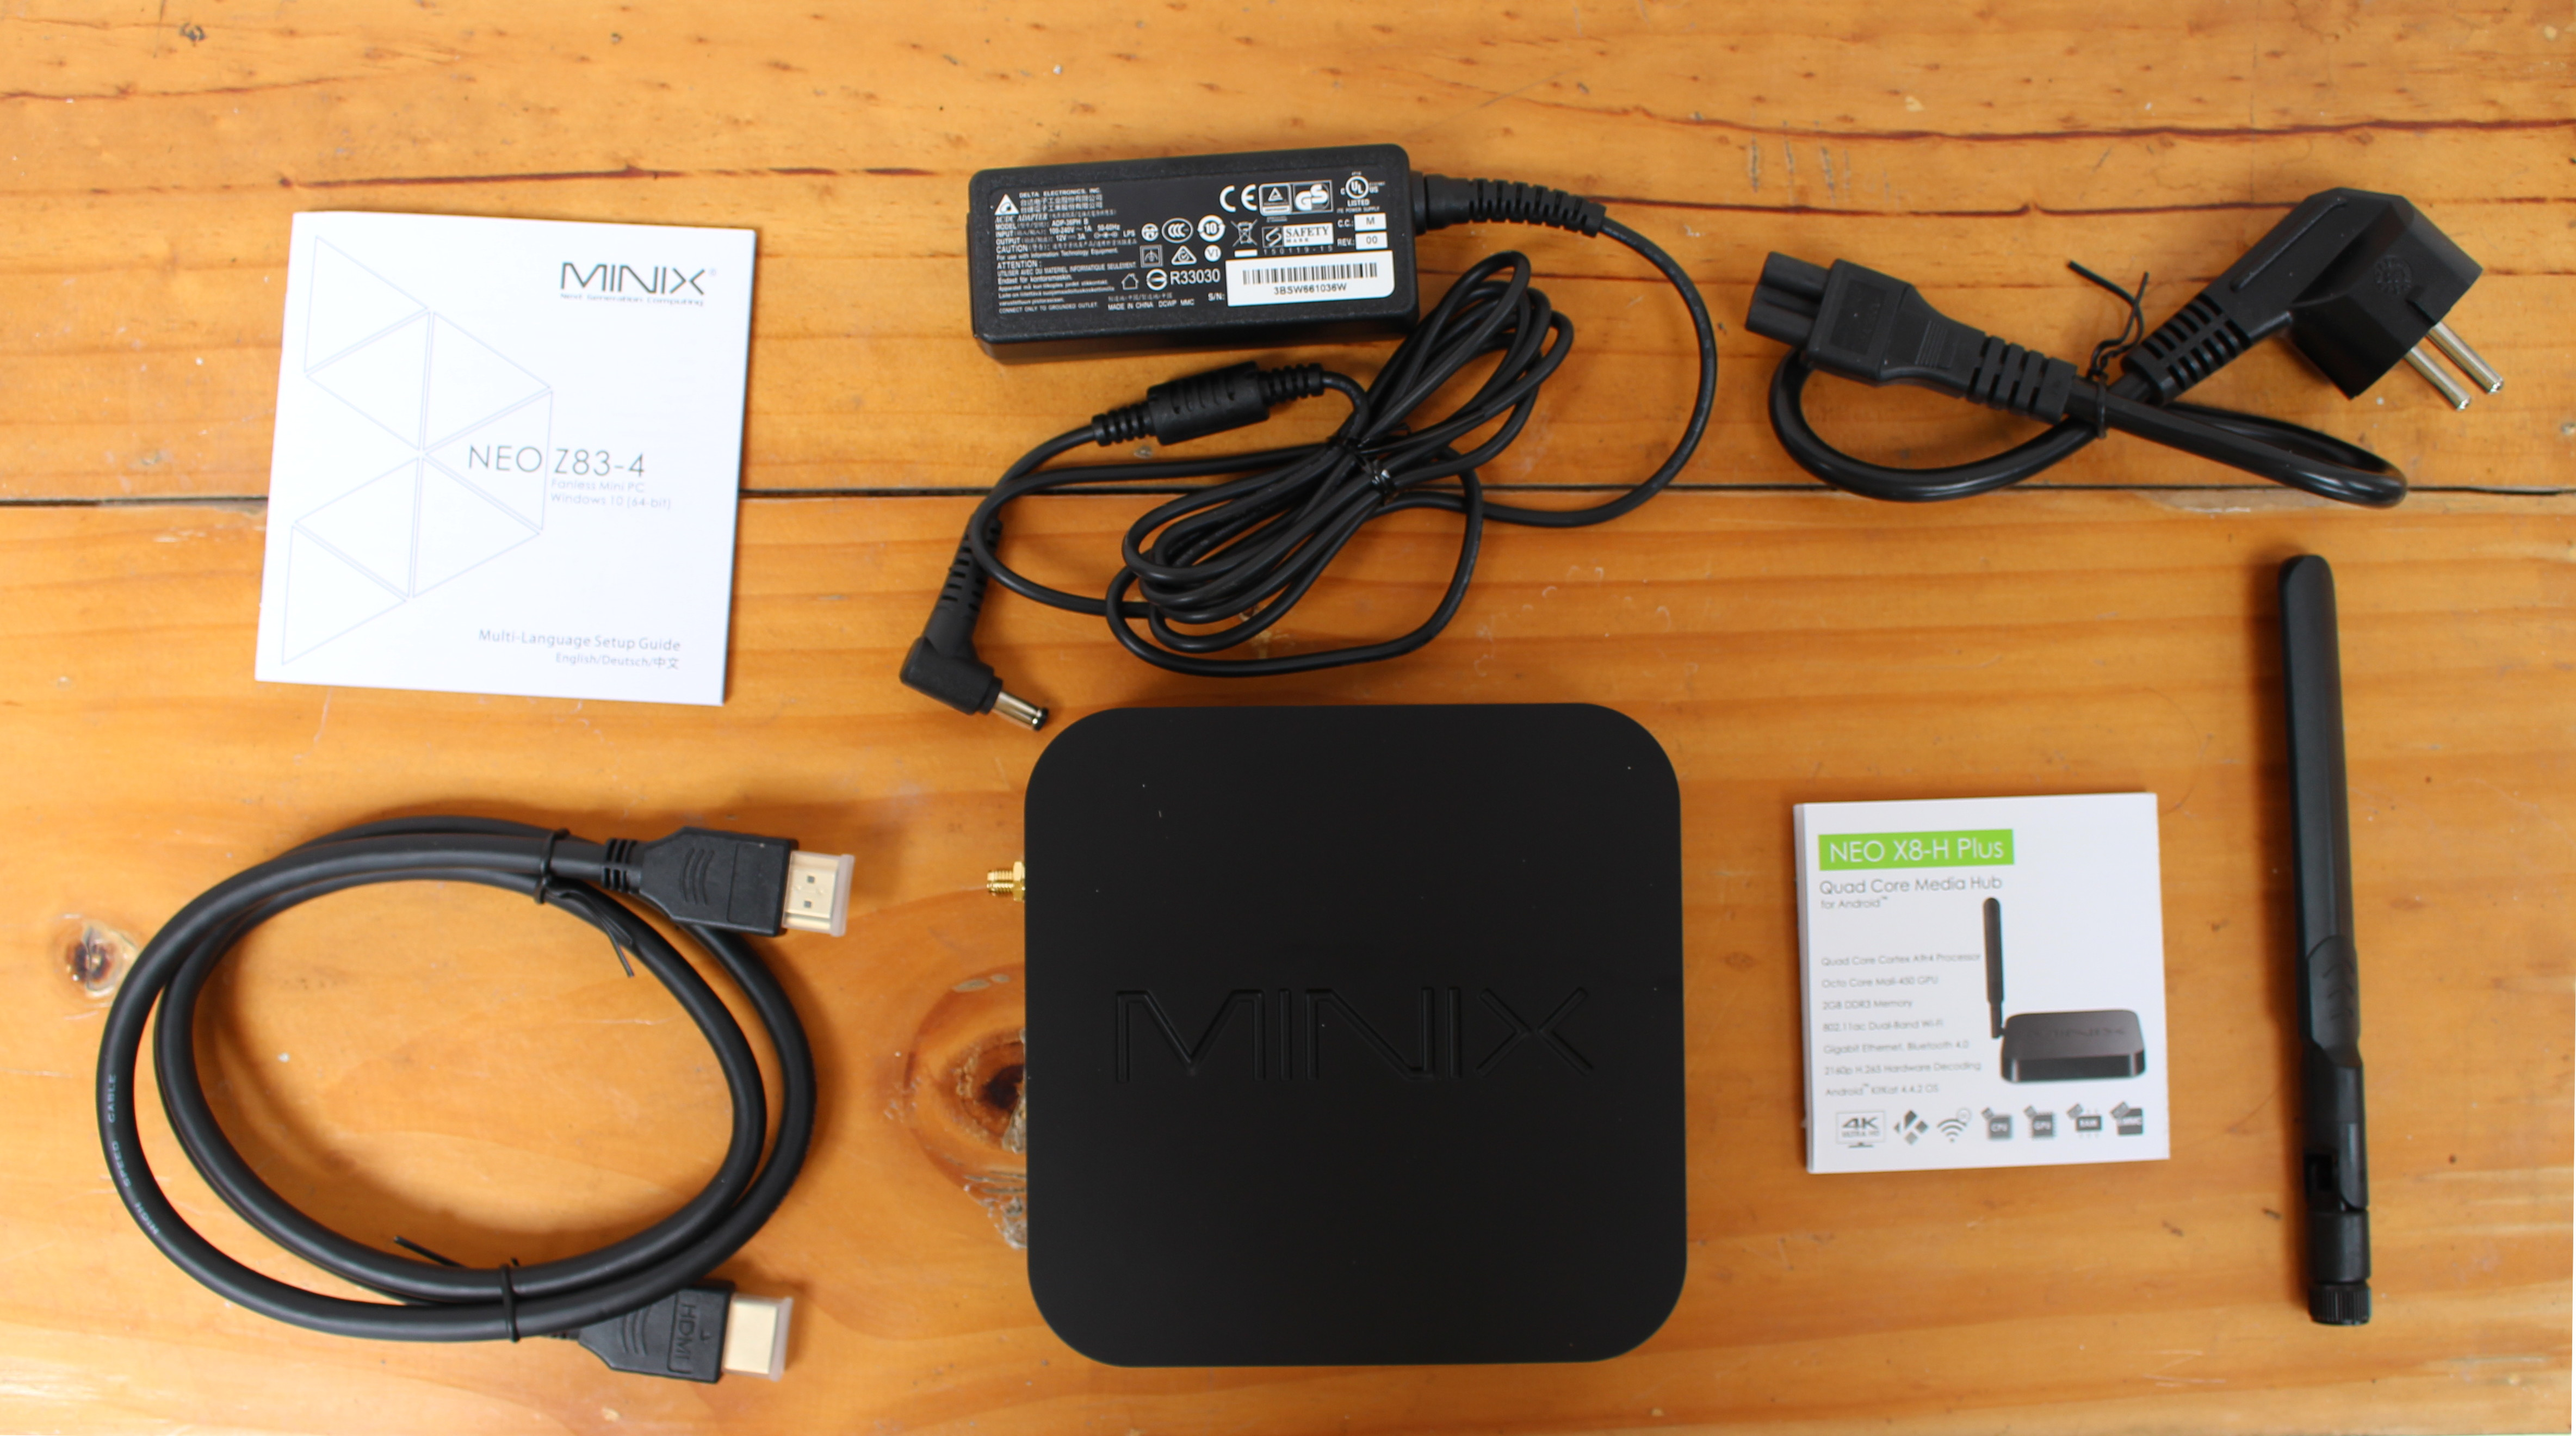 Minix Neo Z83 4 Fanless Mini Pc Review Part 1 Specs